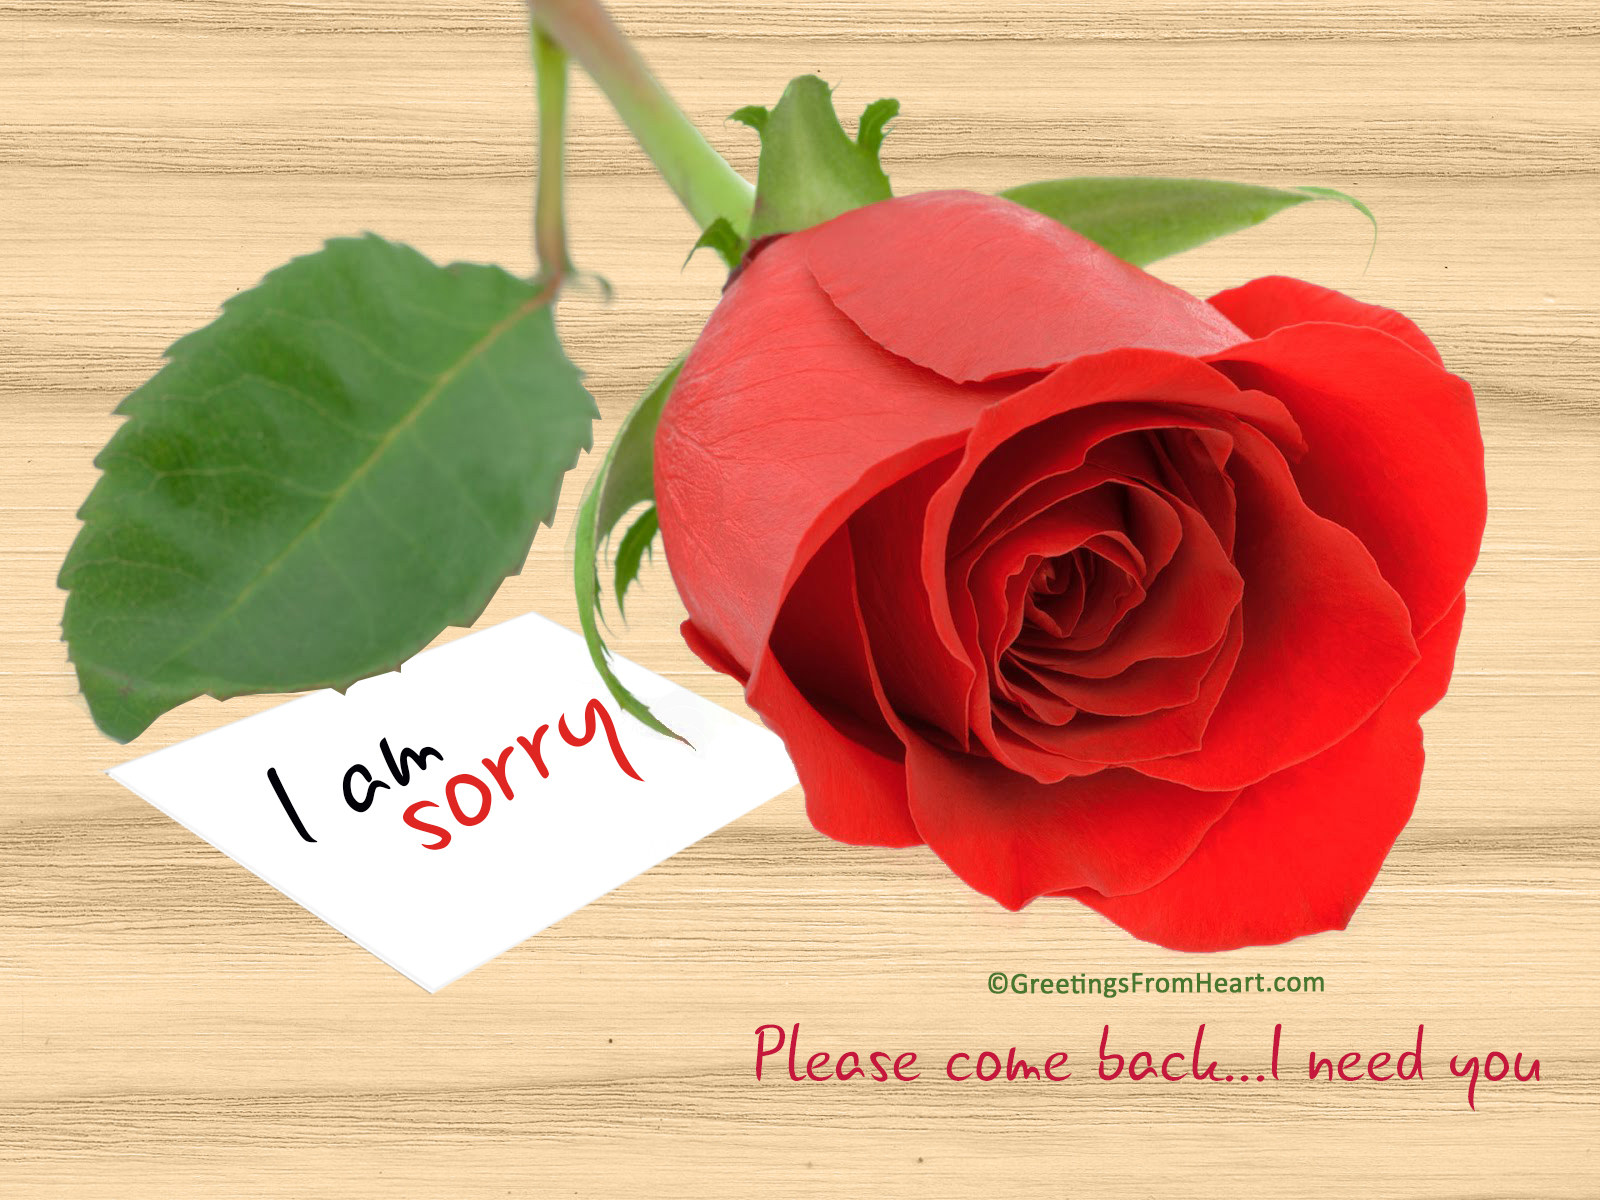 please come back i need you sorry image for gf